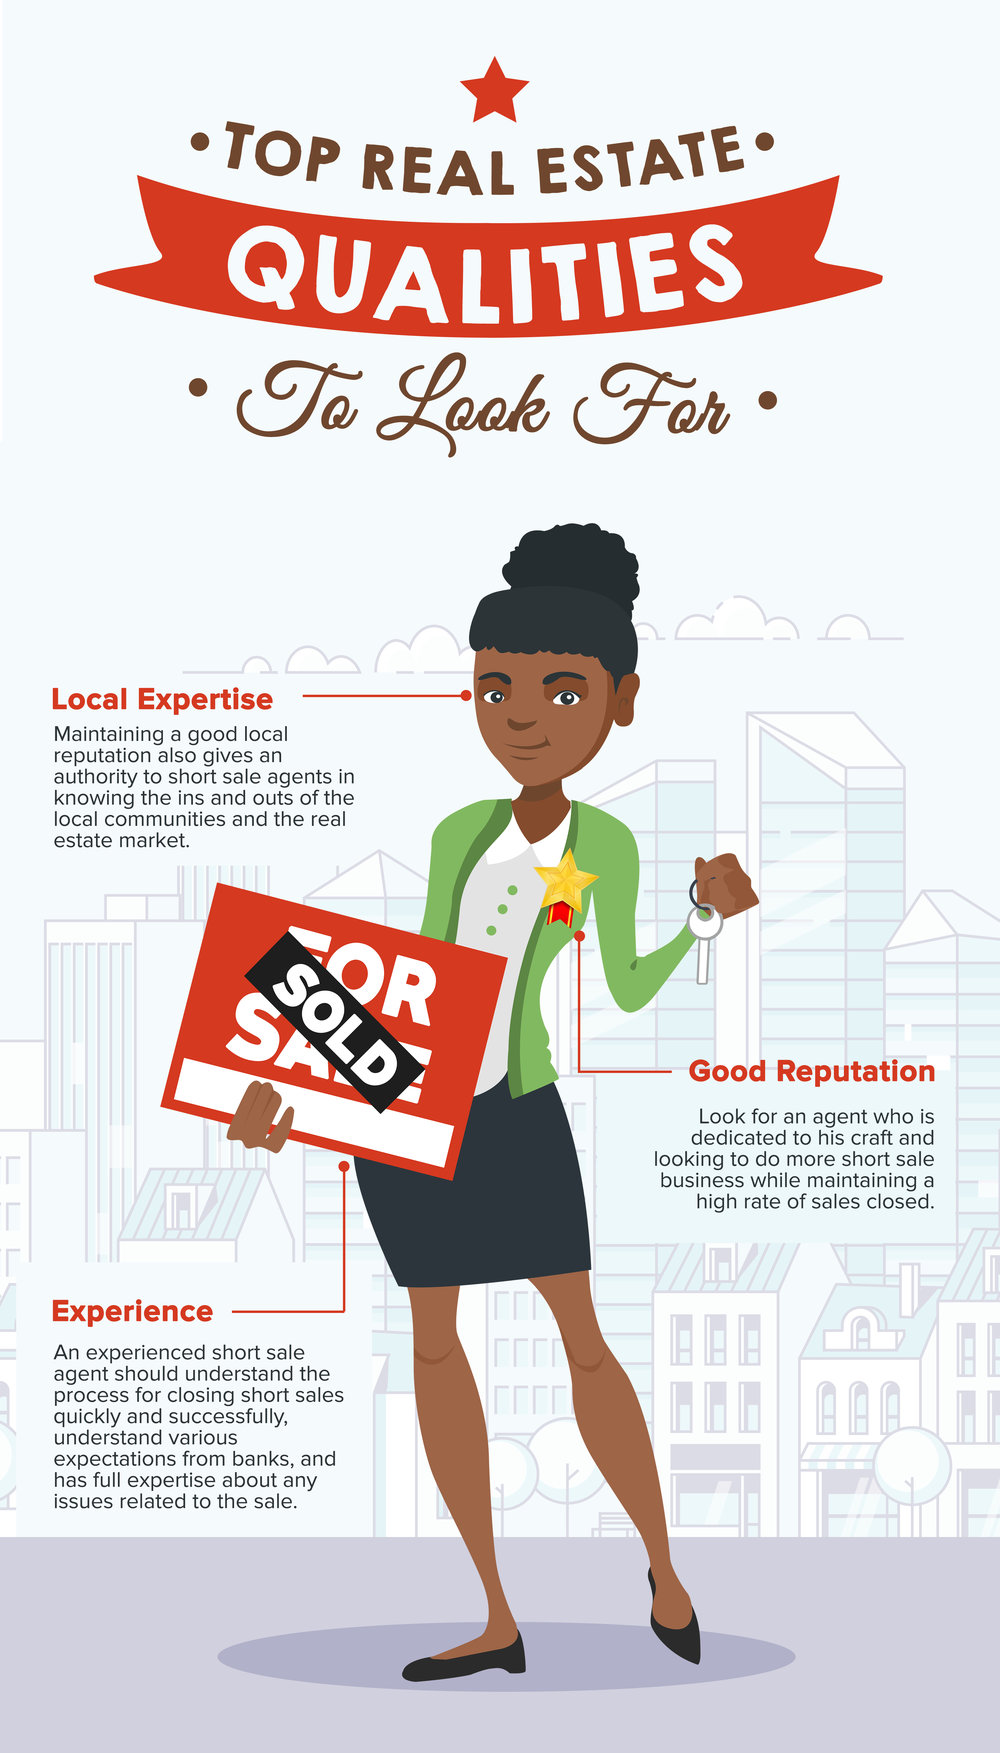 Top Qualities To Look For in A Short Sales Agent